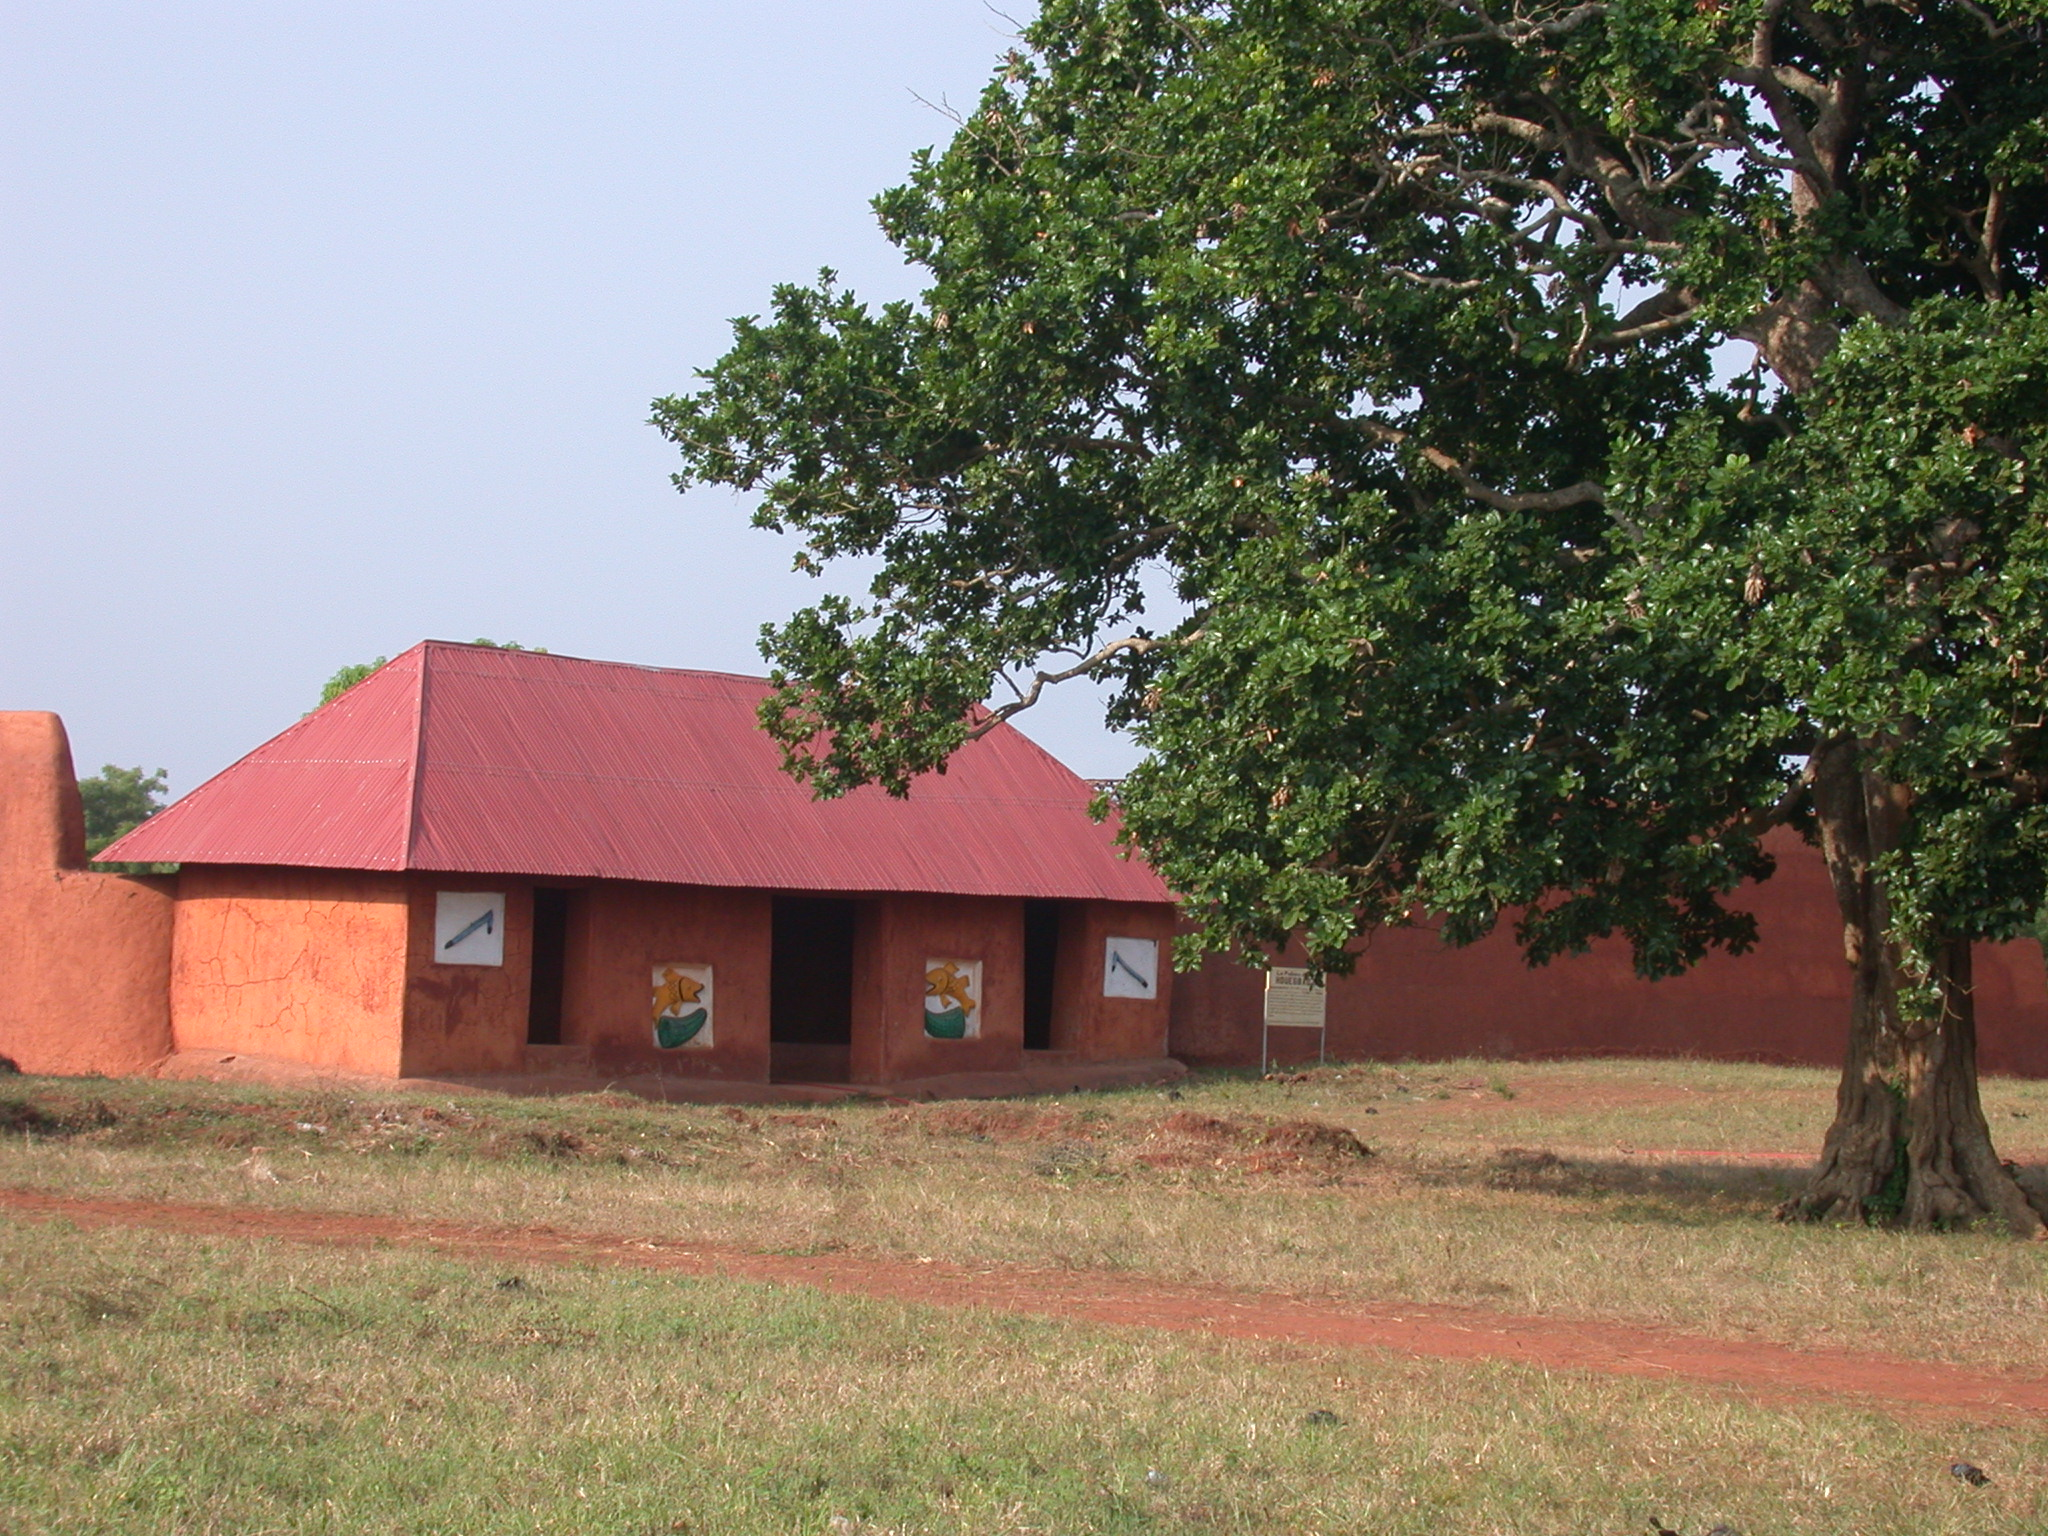 Palace of King Houegbadja, Abomey, Benin